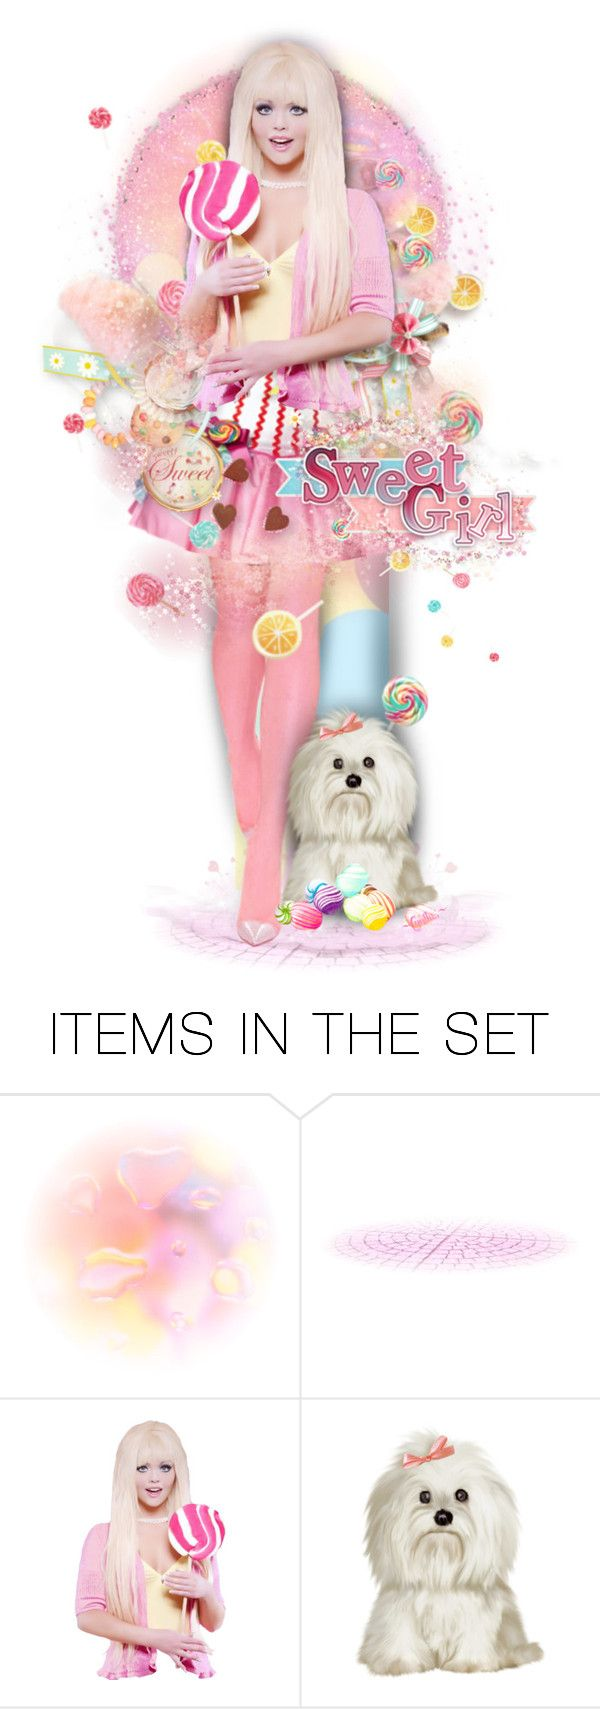 """""""🍭Sweet Girl🍧"""" by cindu12 ❤ liked on Polyvore featuring art"""